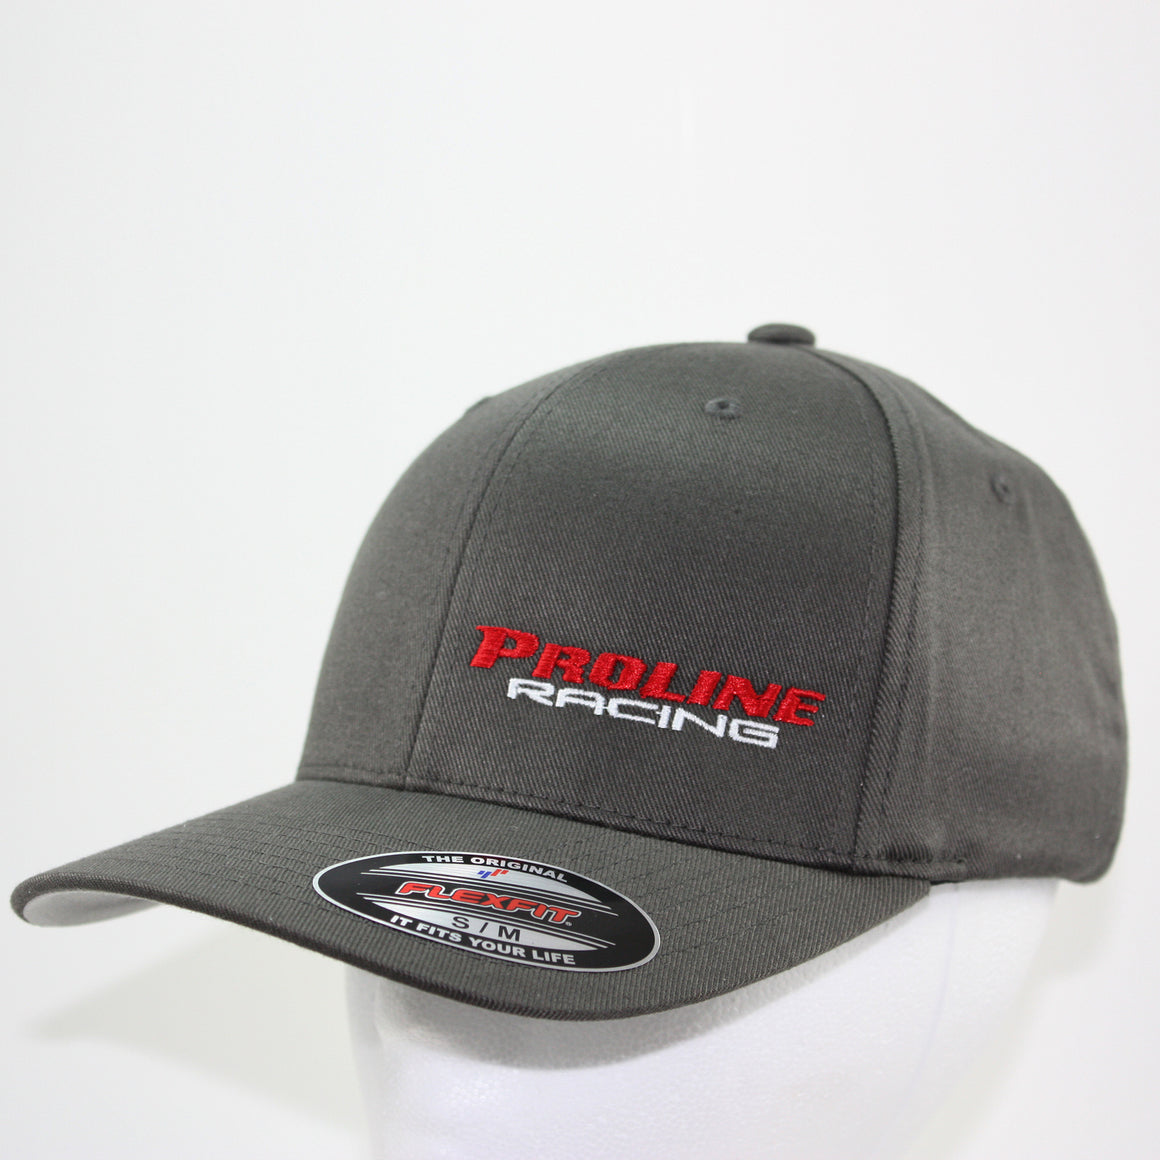 PLR FLEXFIT HAT Small/Medium / Gray - Pro Line Racing - 3